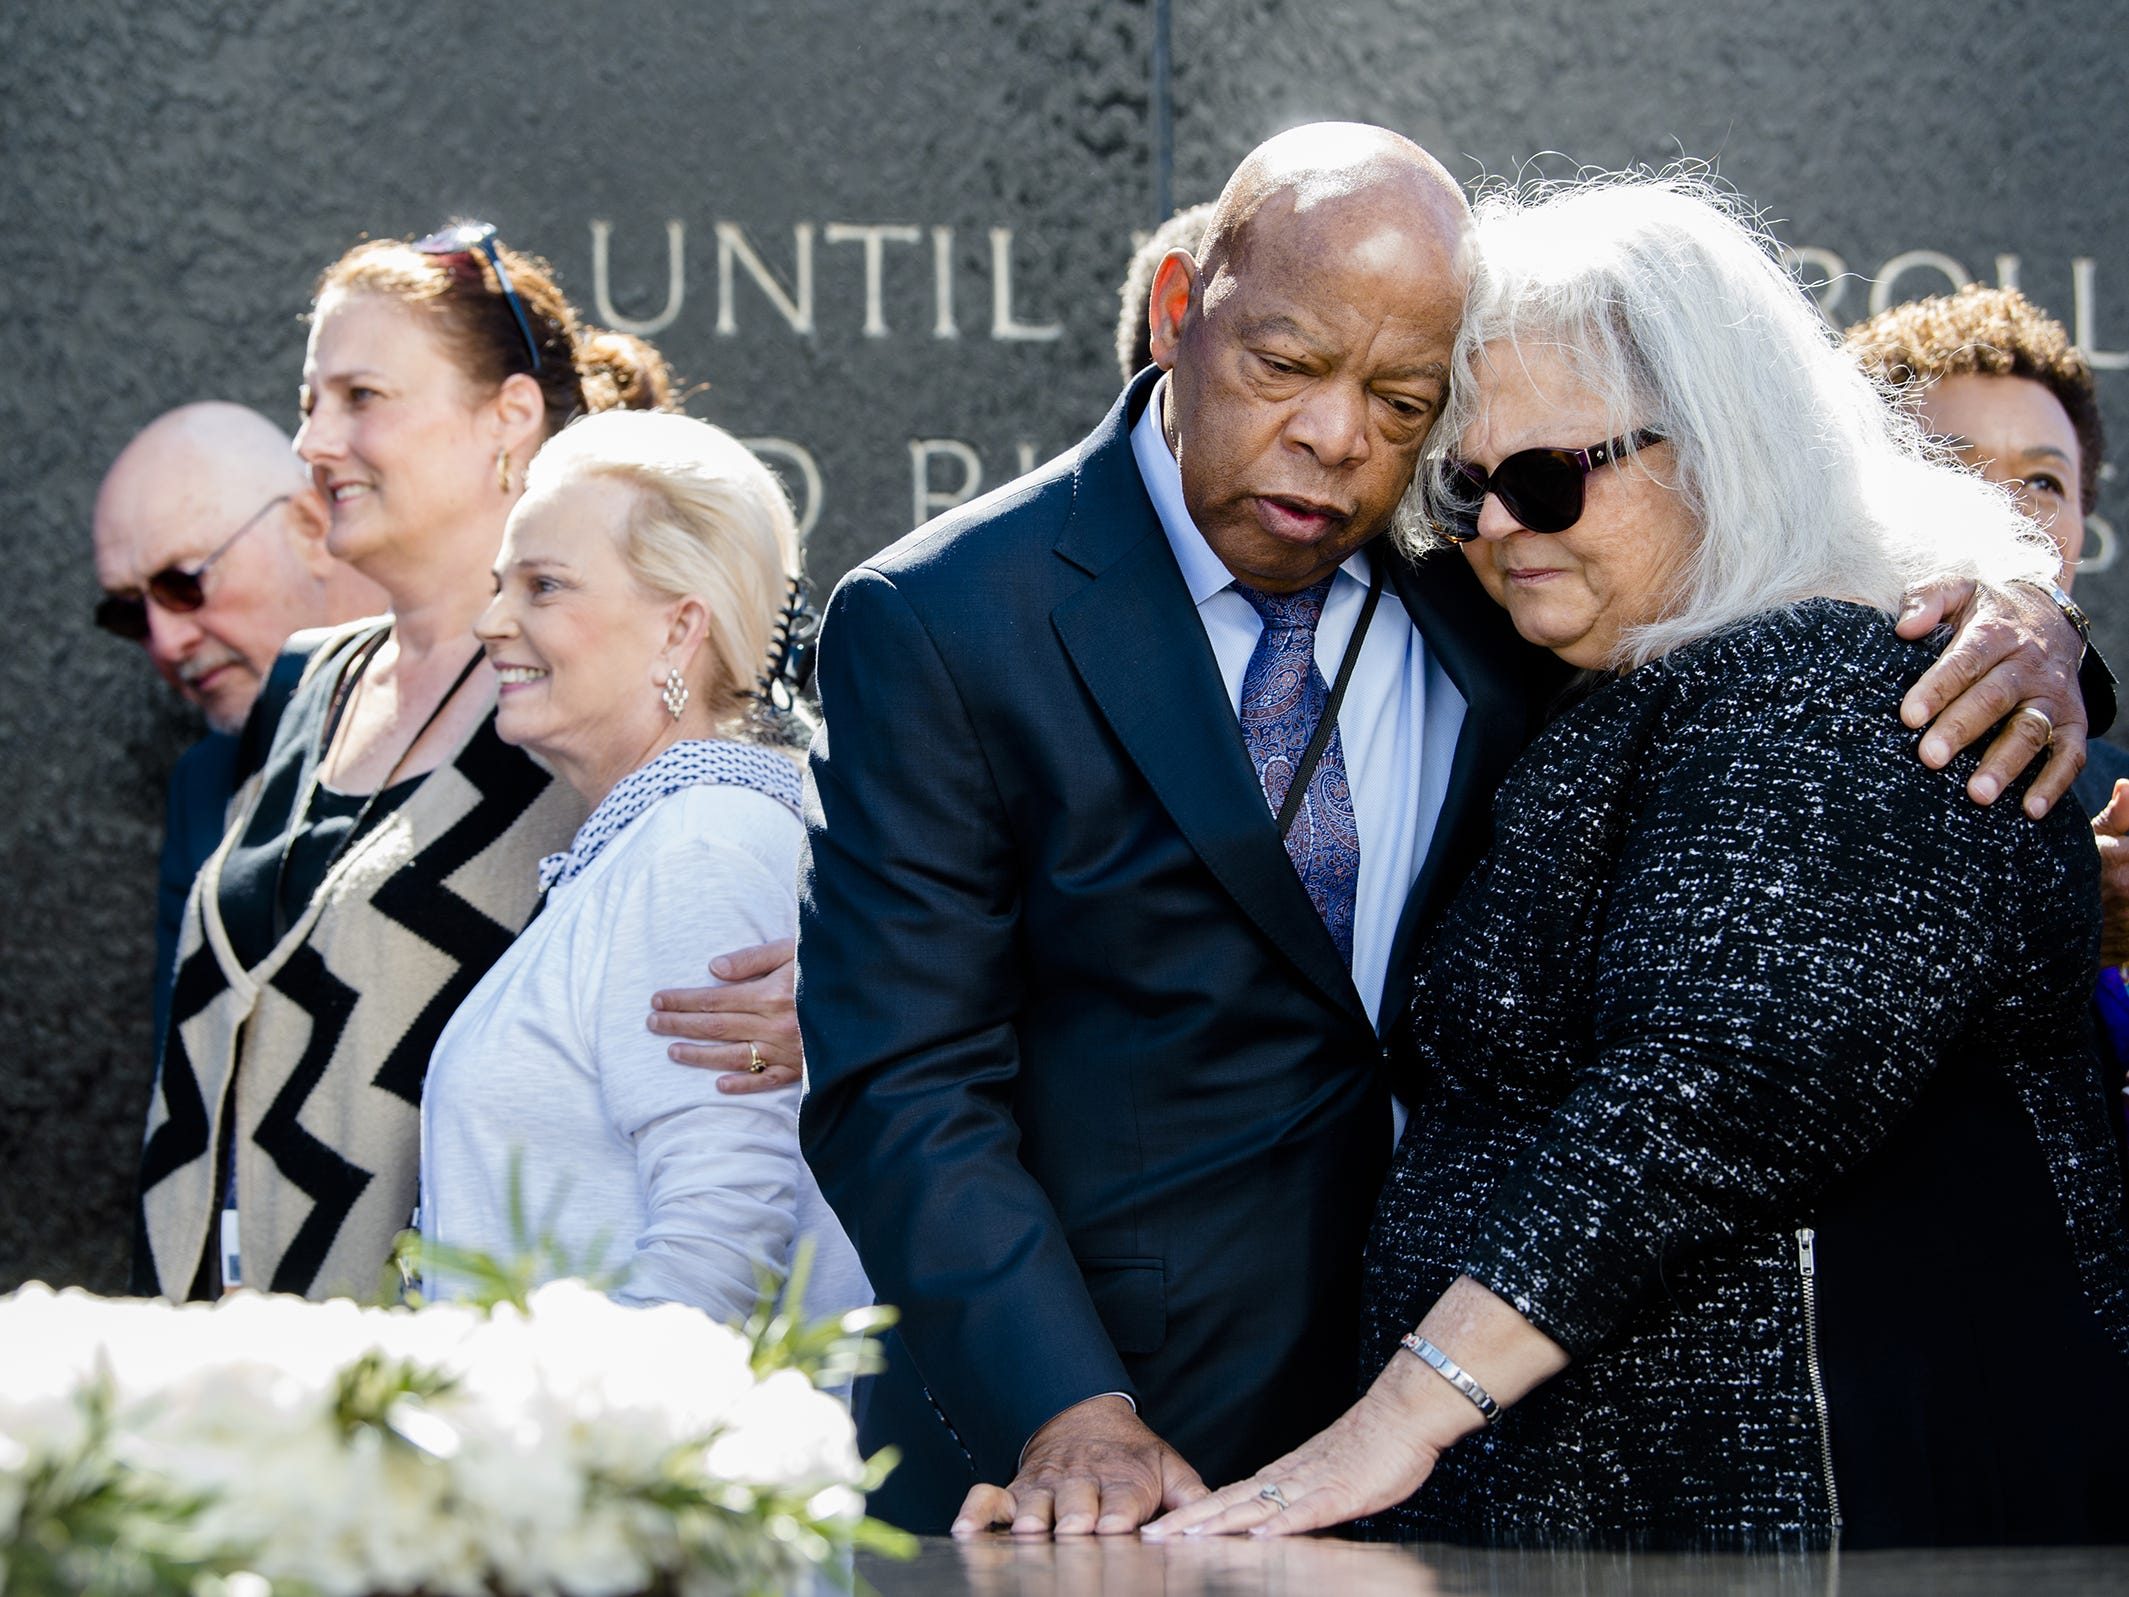 It was always a pleasure and an honor to photograph Rep. John Lewis. I've done it many times before his annual visit to Selma, Alabama, for the anniversary of the Selma to Montgomery Civil Rights March. He always made it a point to say hello, always humble and gracious.  